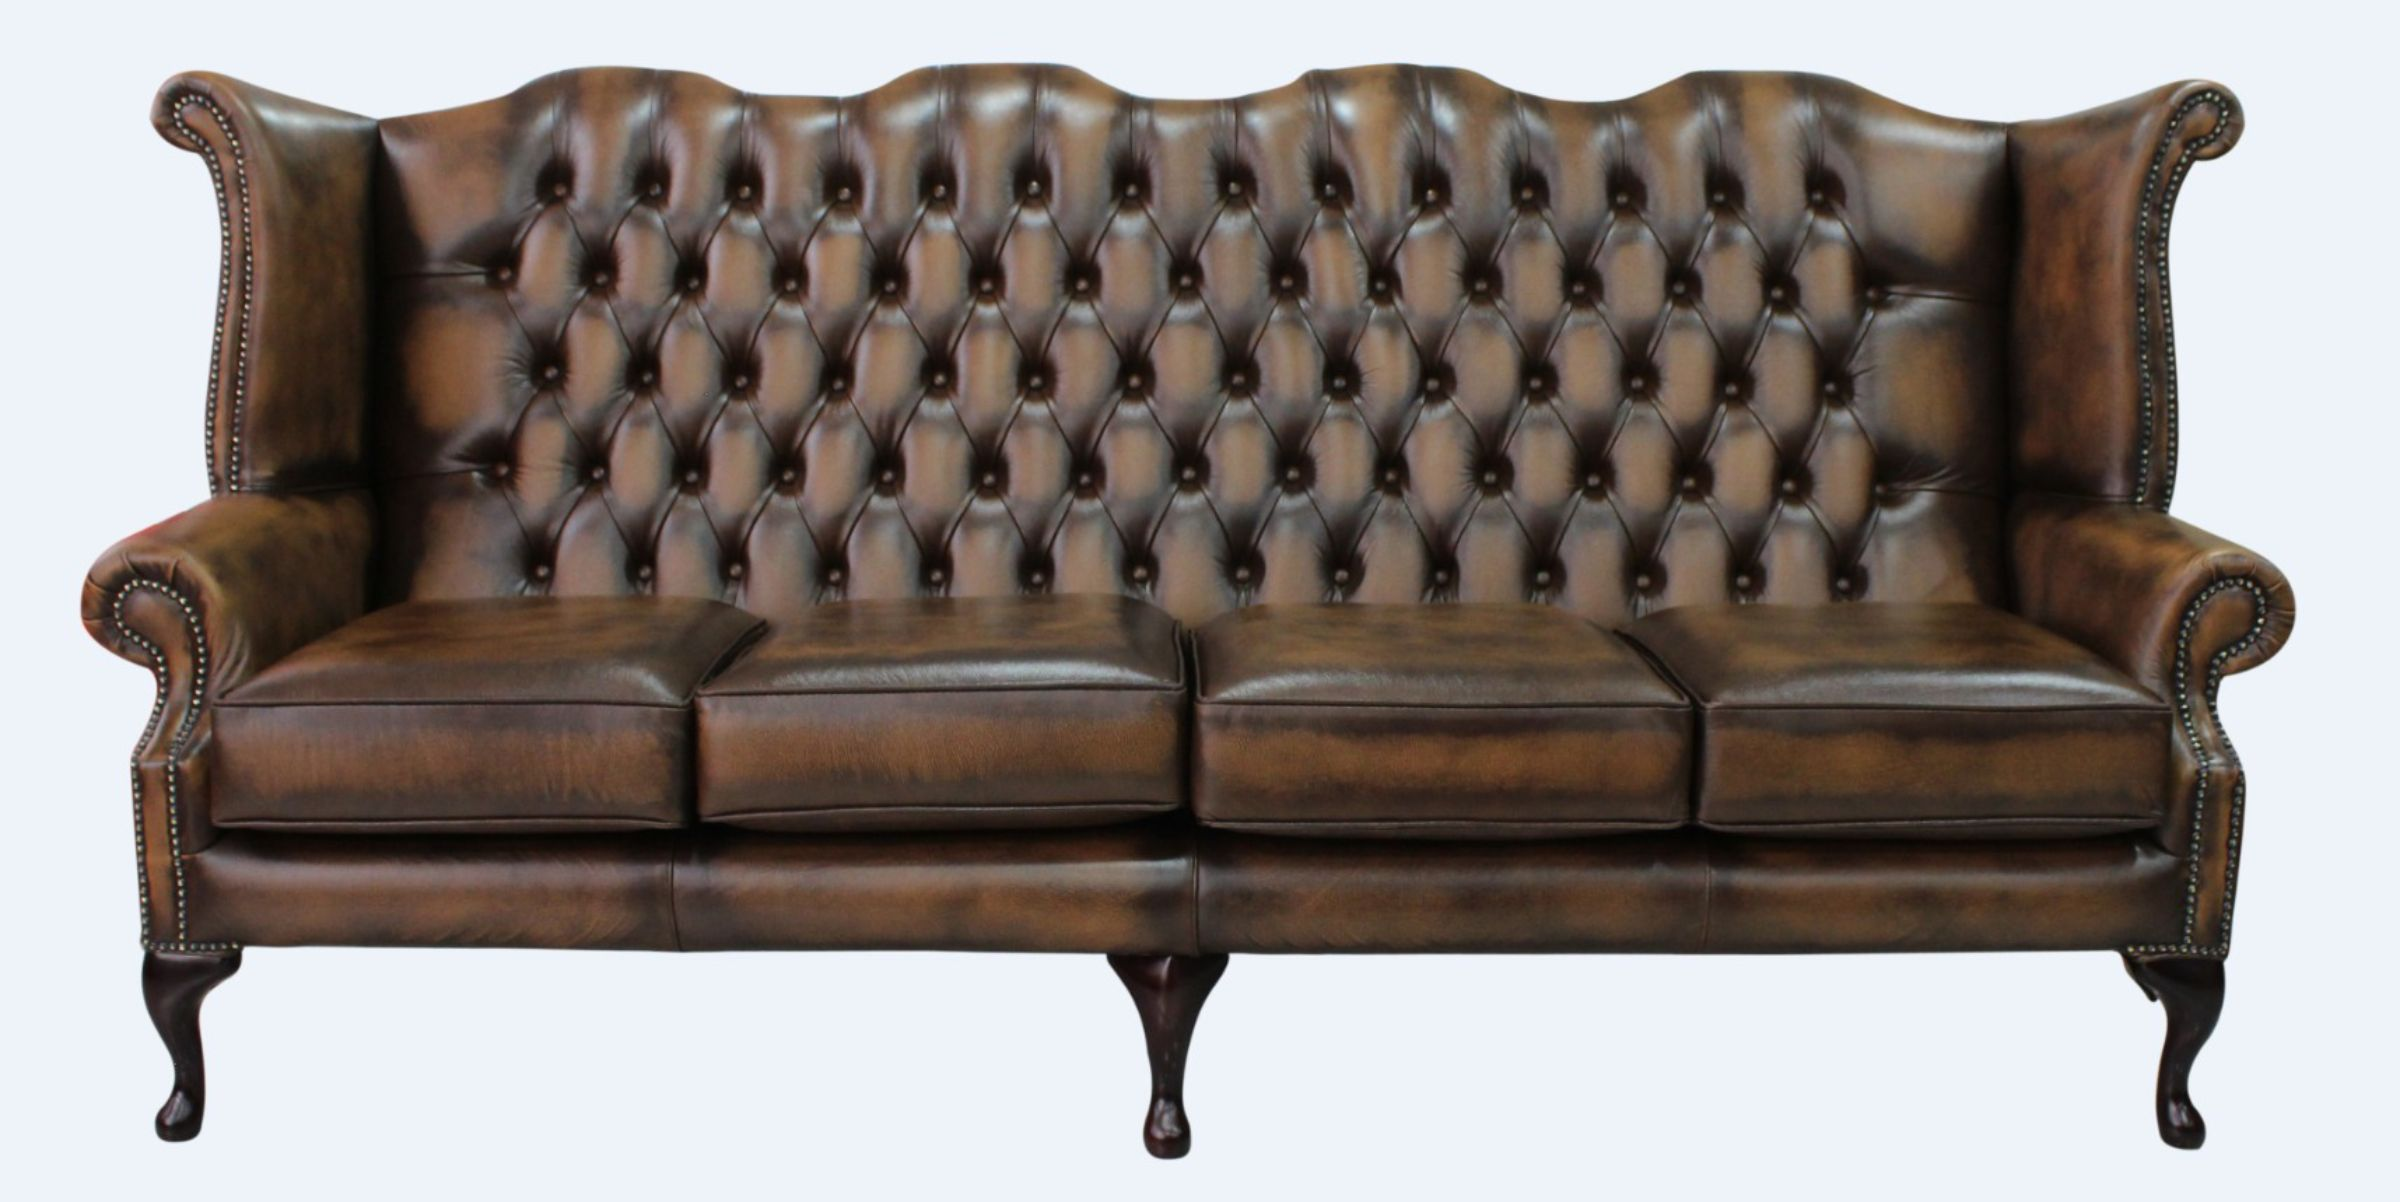 Tan Chesterfield 4 Seater High Back Wing Sofa